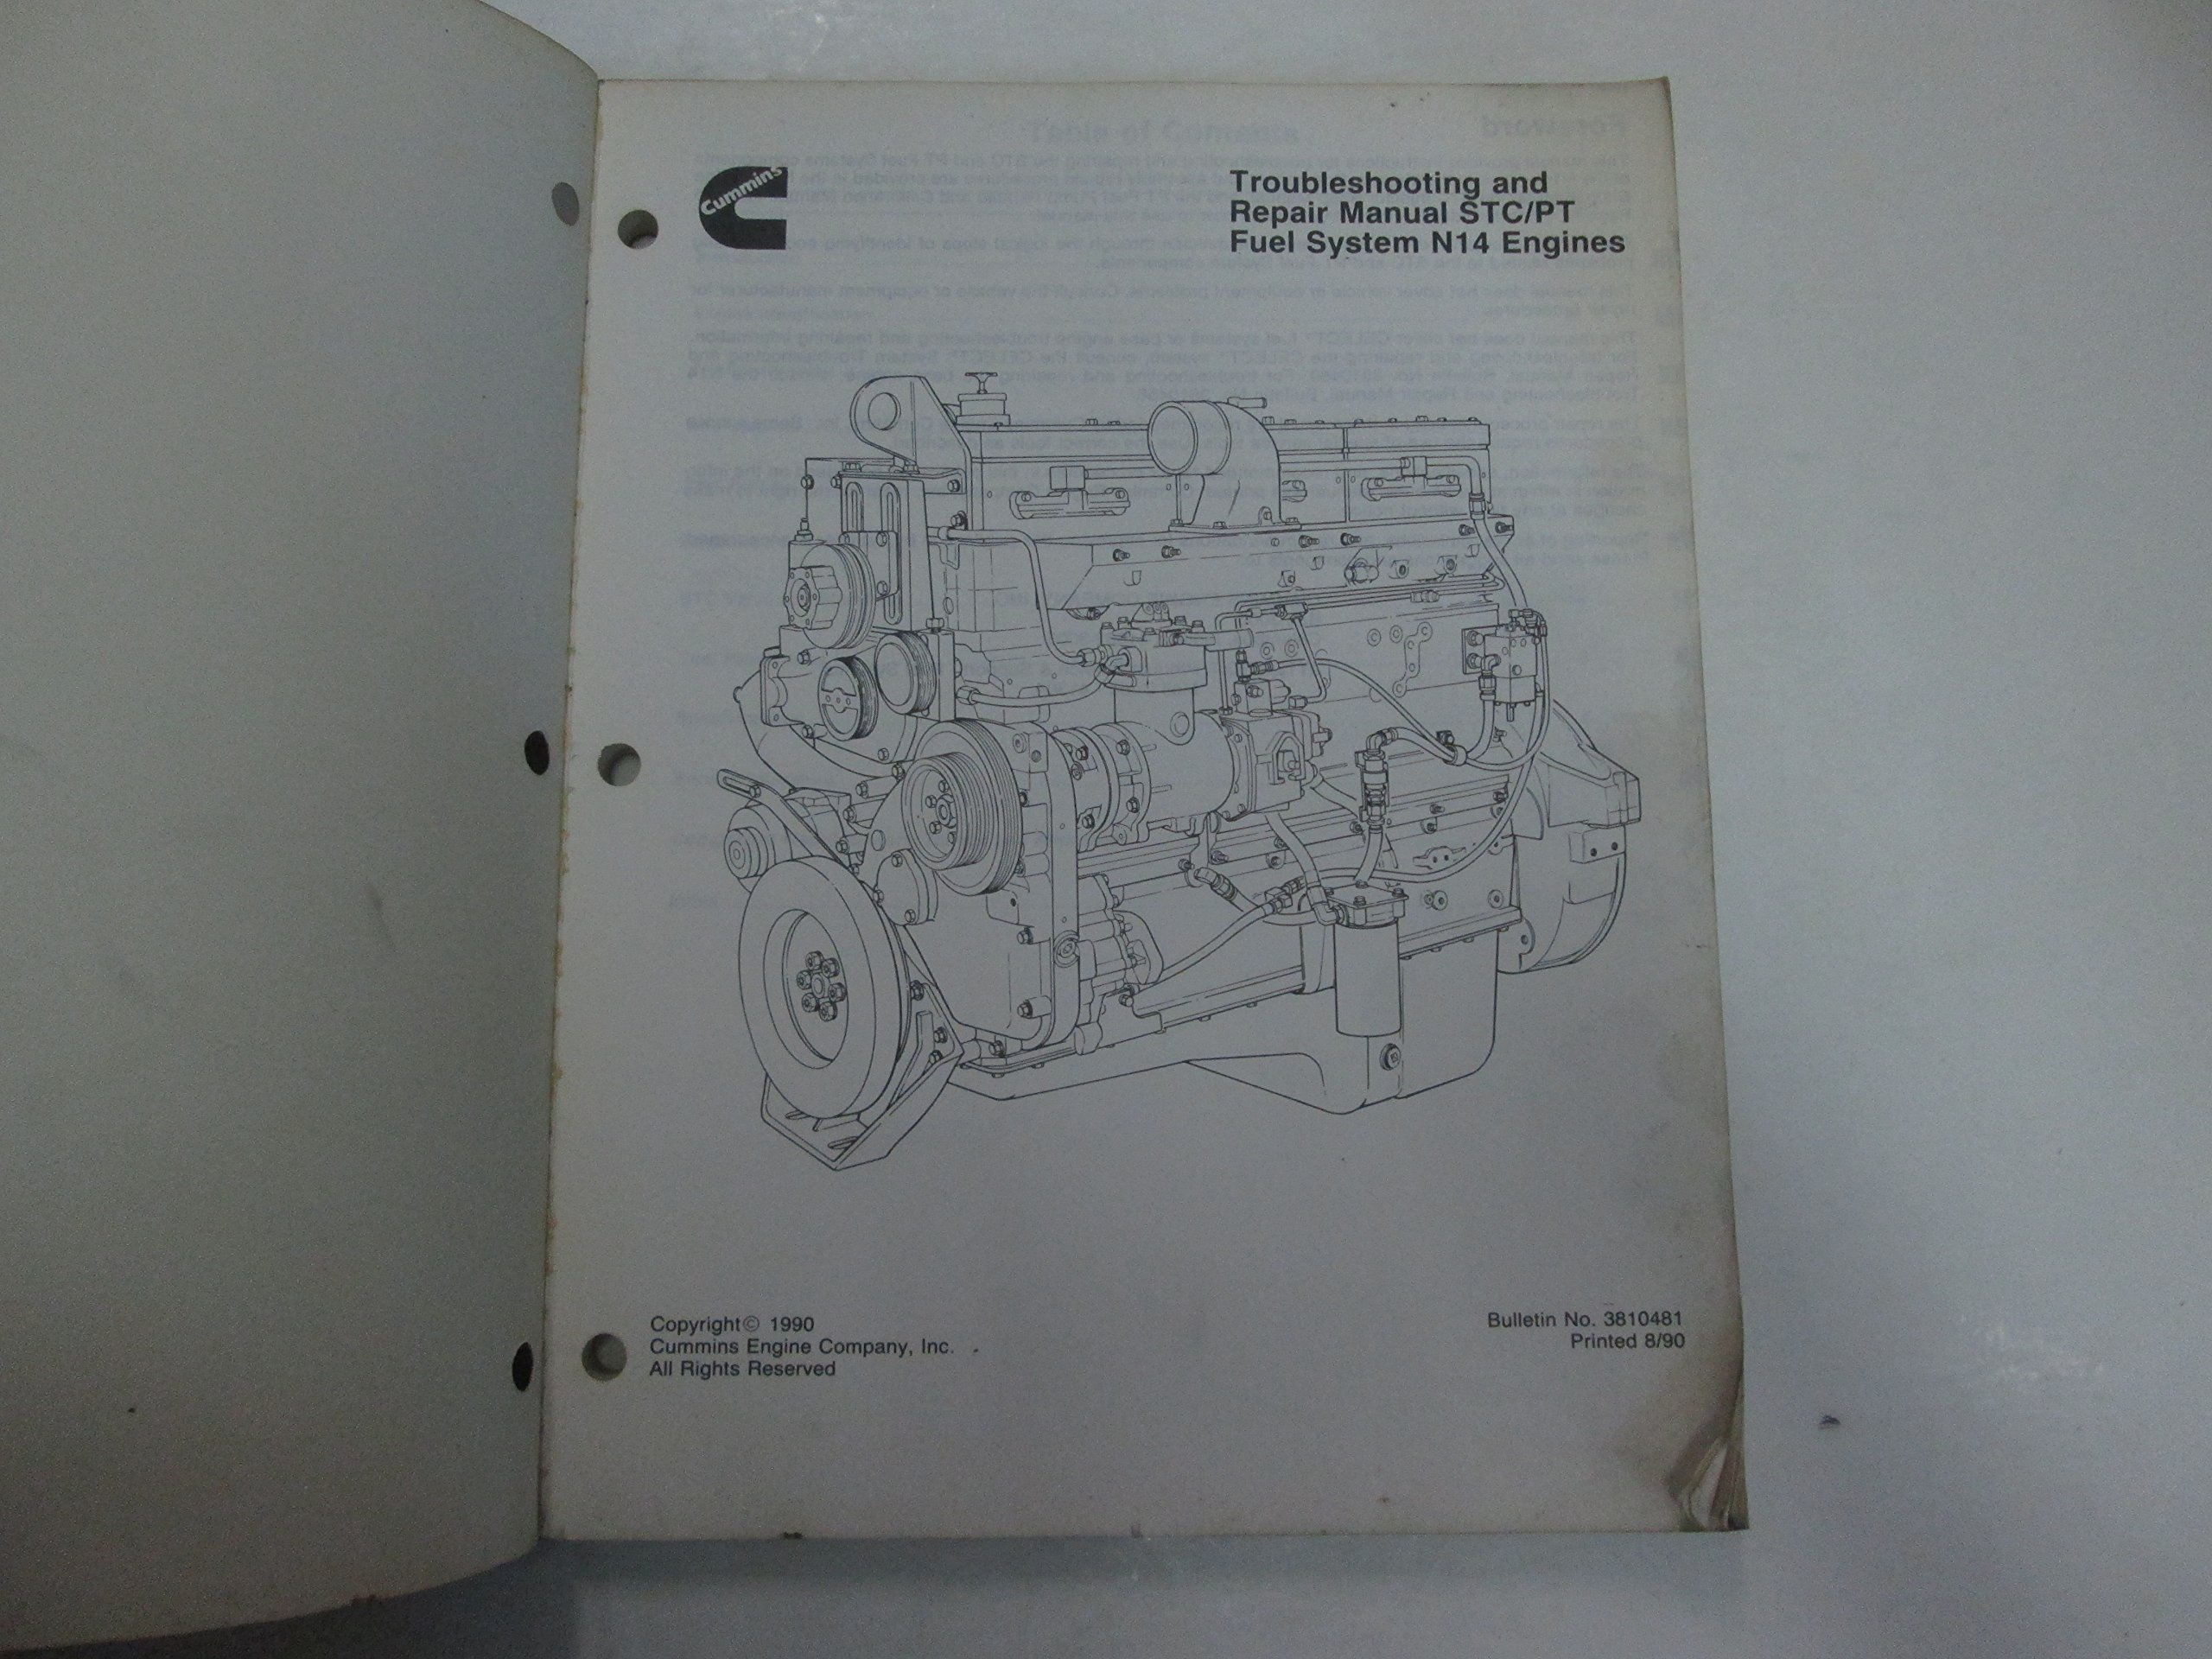 Stupendous 1990 Cummins Troubleshooting Repair Manual Stc Pt Fuel System N14 Wiring 101 Mecadwellnesstrialsorg